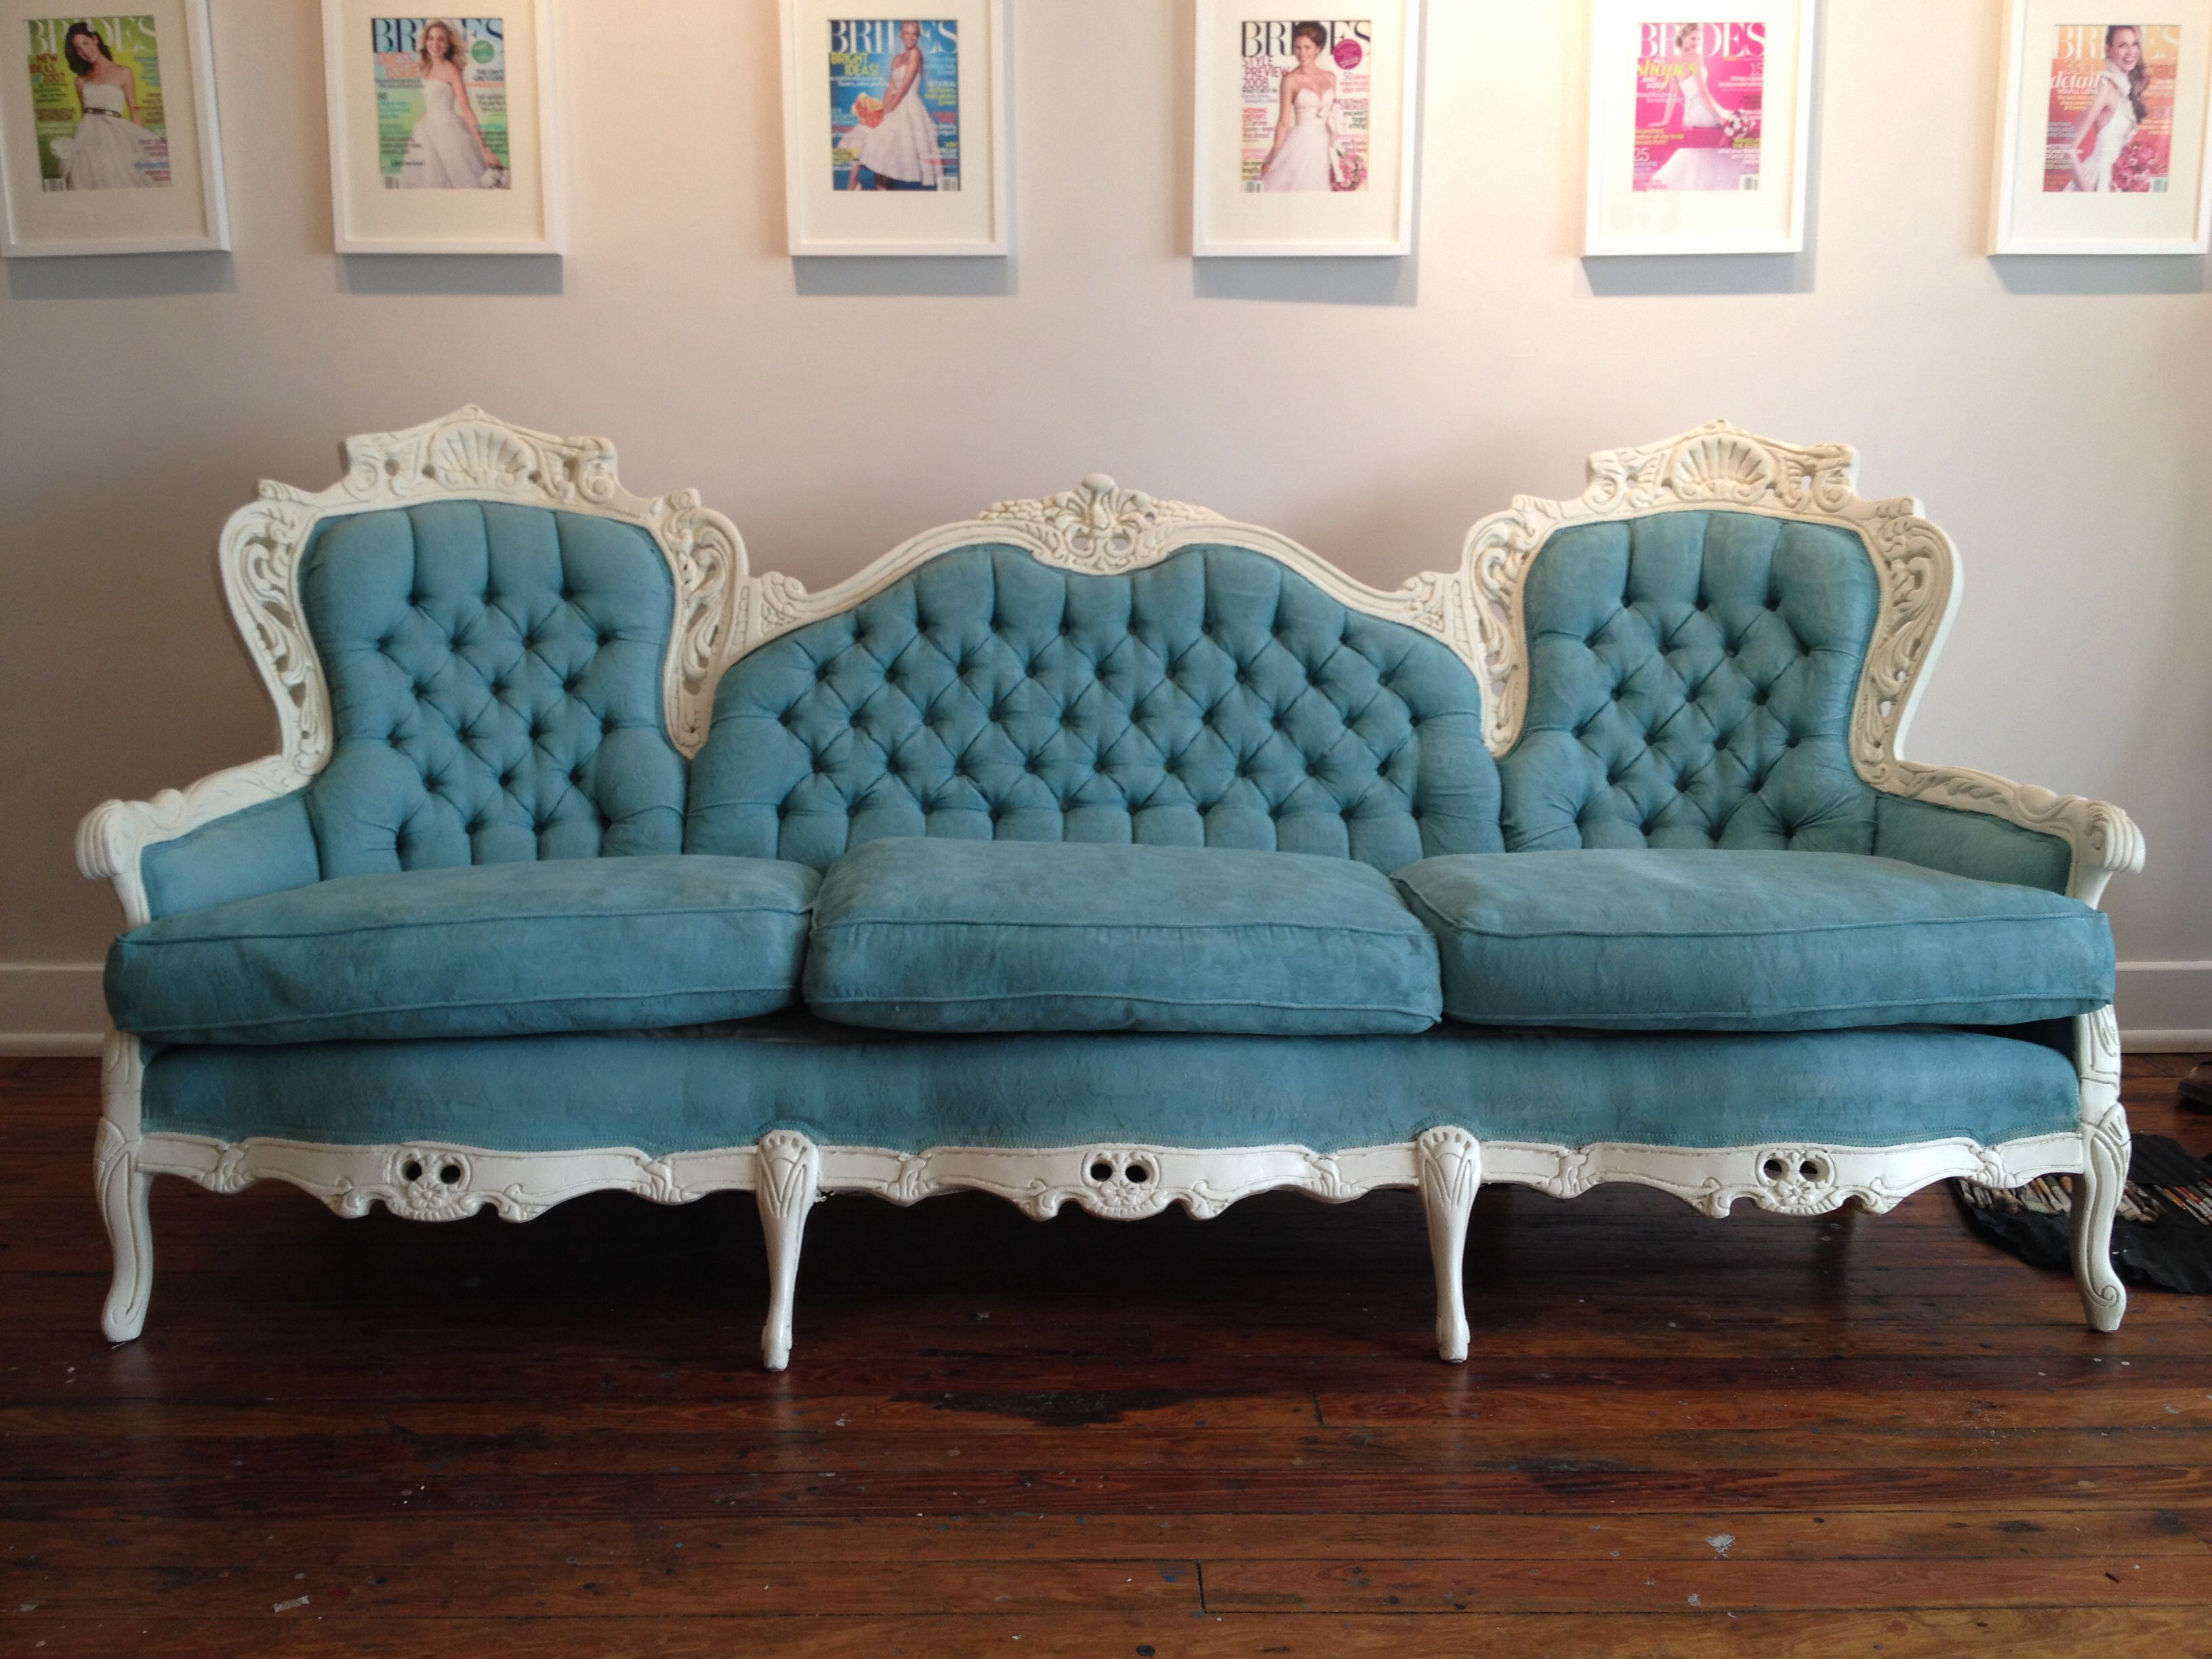 Vintage Italian Sofa Redesigned With Chalk Paint In Provence And Old White Custom Painted For A Wedding Event By Tlc Design Studio